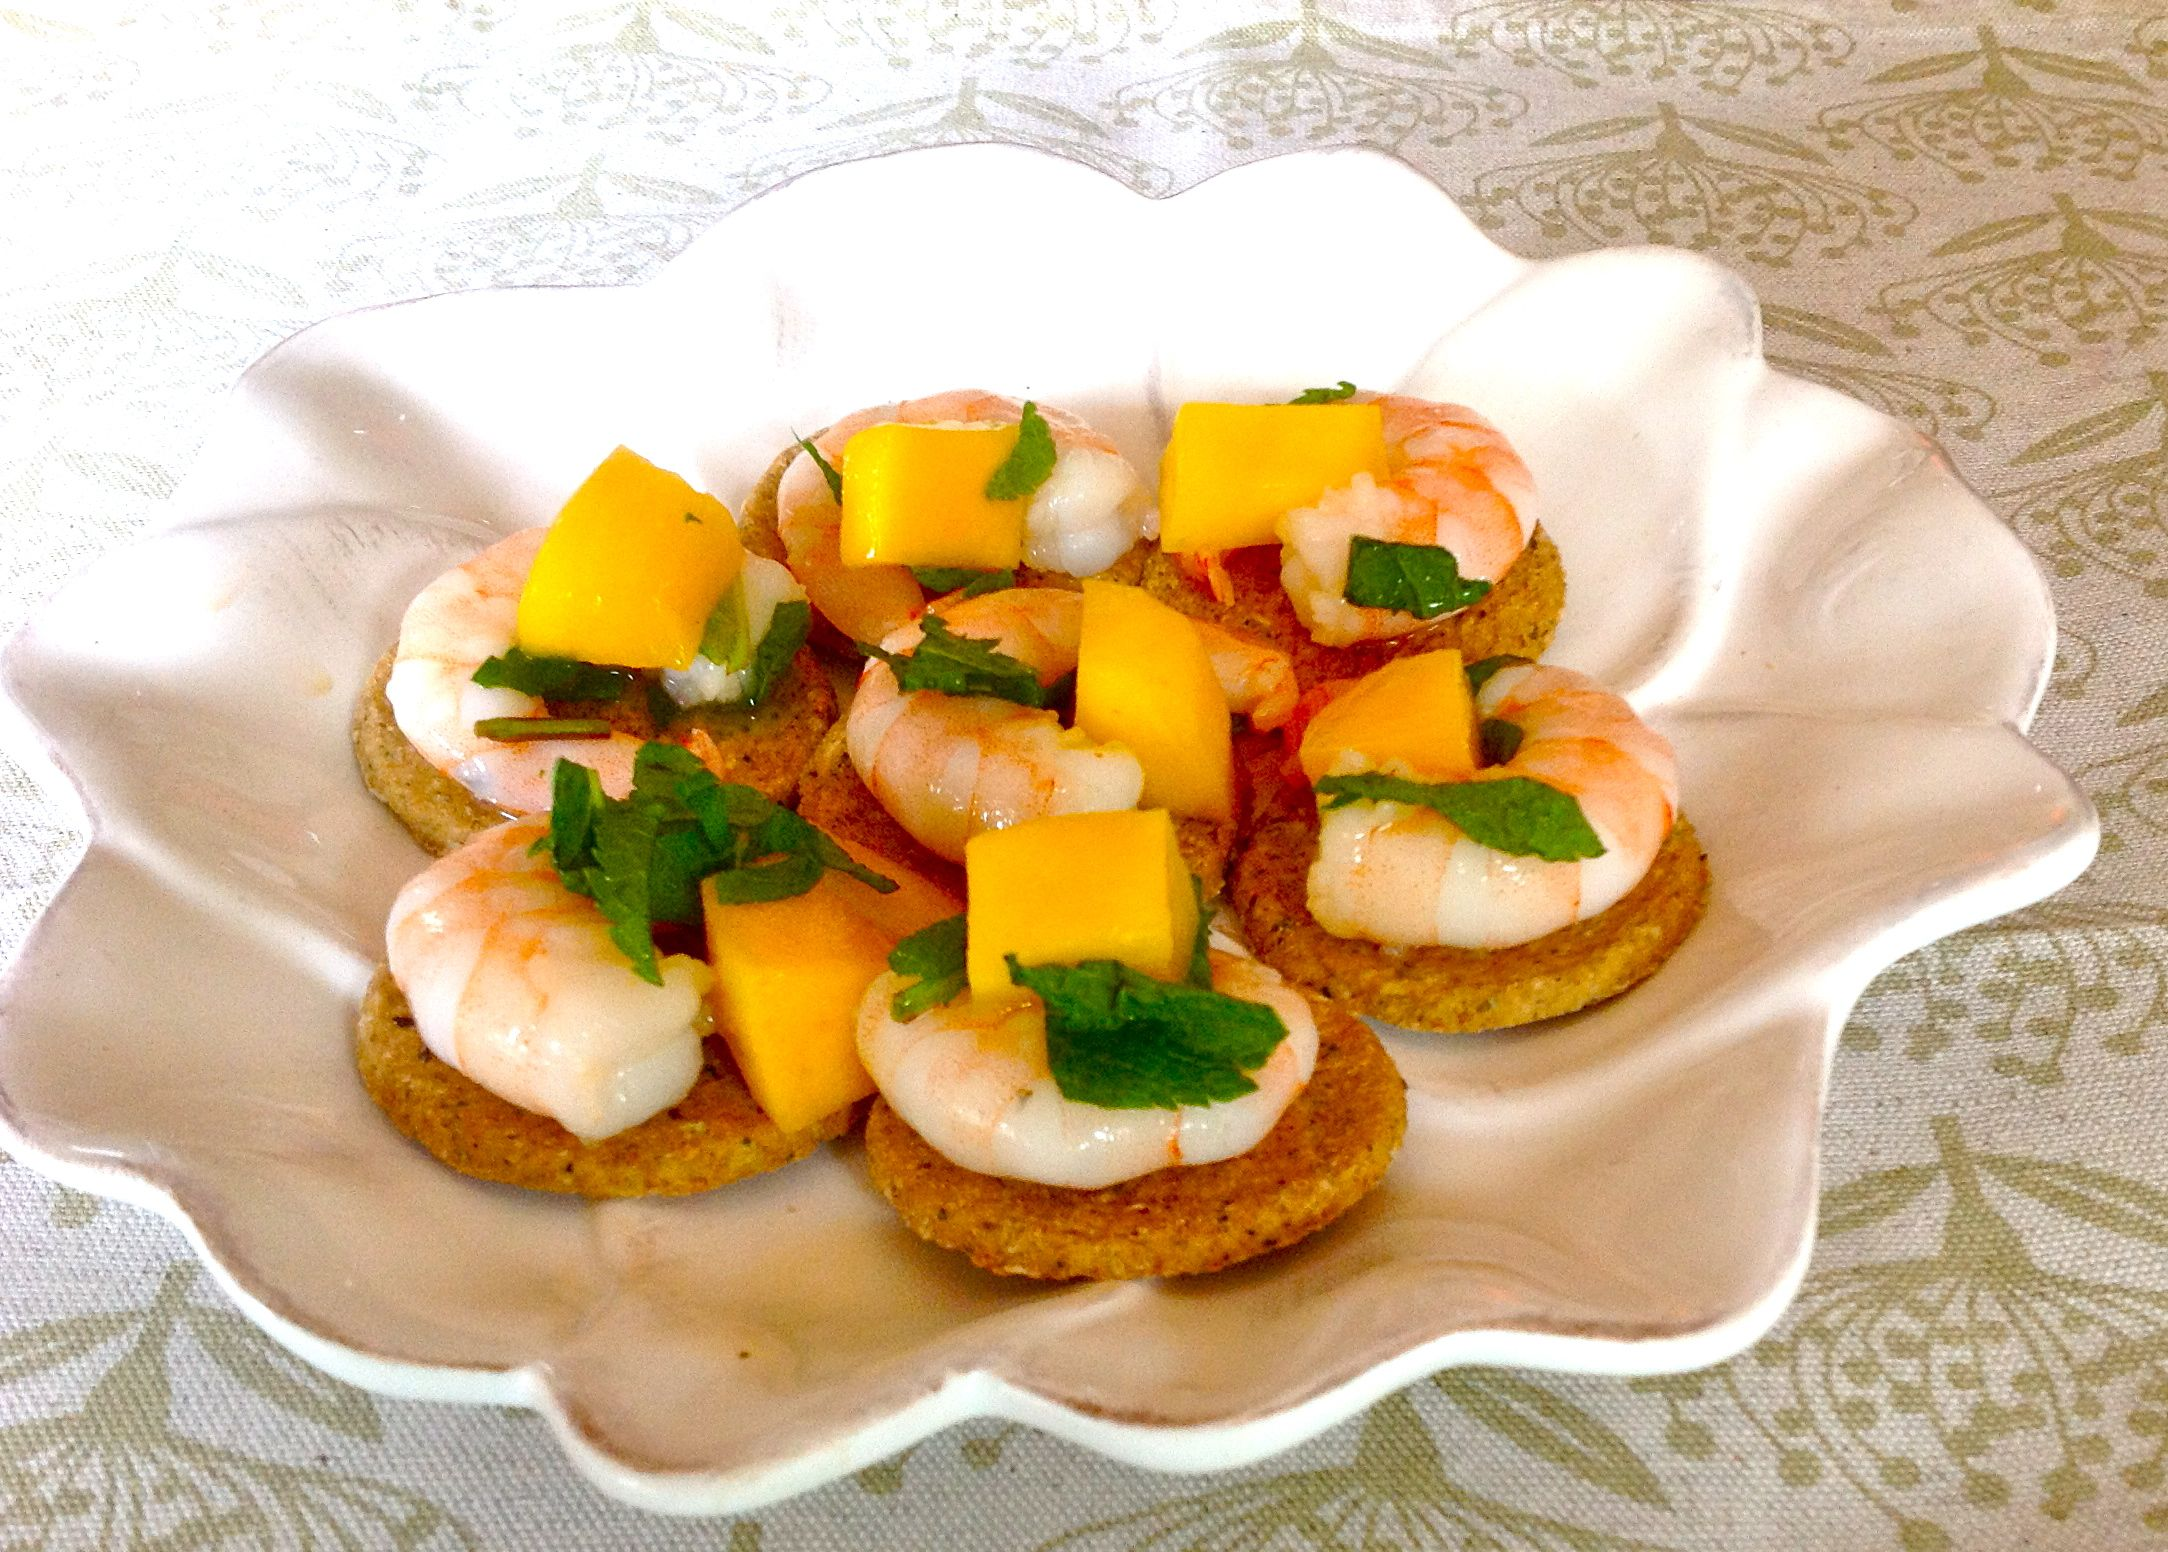 Canapes eating covent garden for Salmon canape ideas